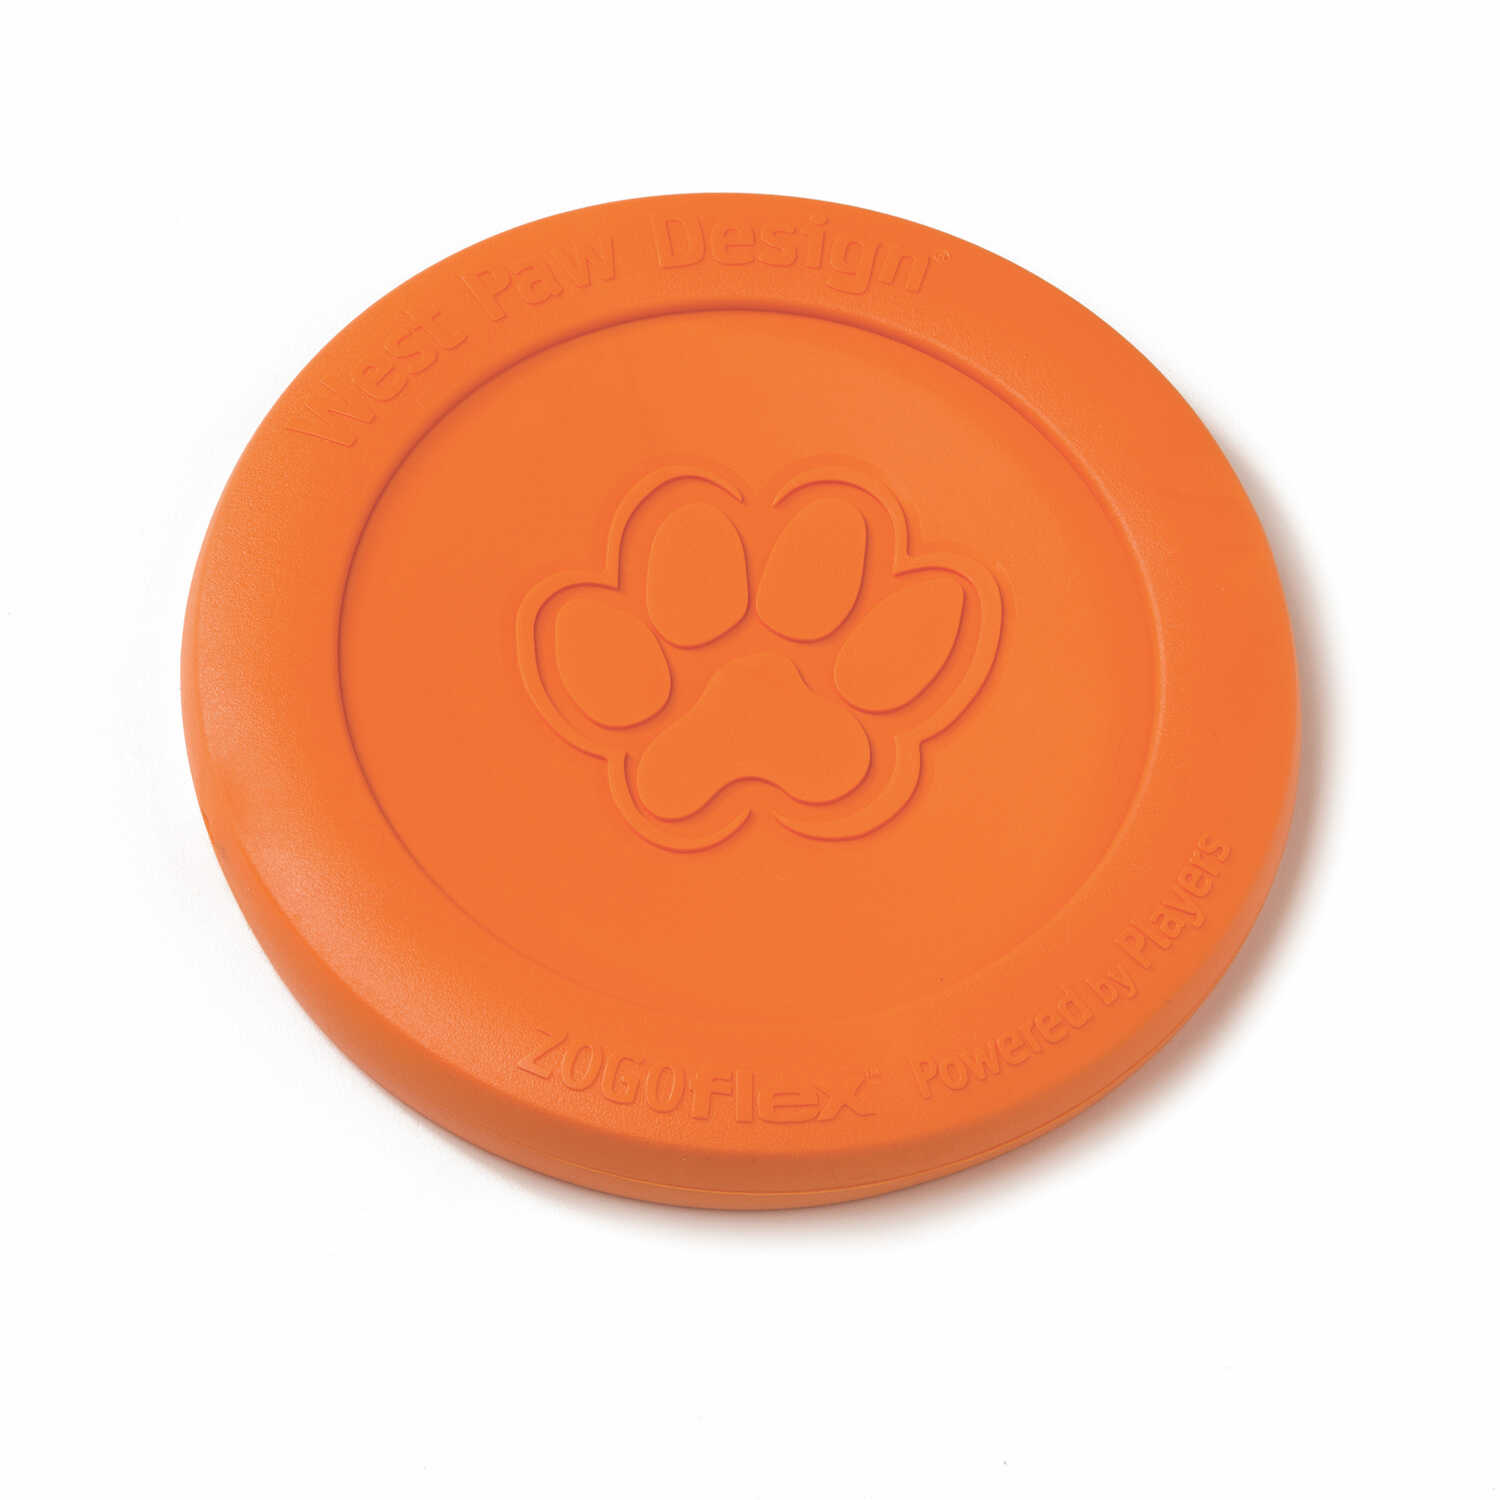 West Paw  Zogoflex  Orange  Zisc Disc  Synthetic Rubber  Frisbee  Small